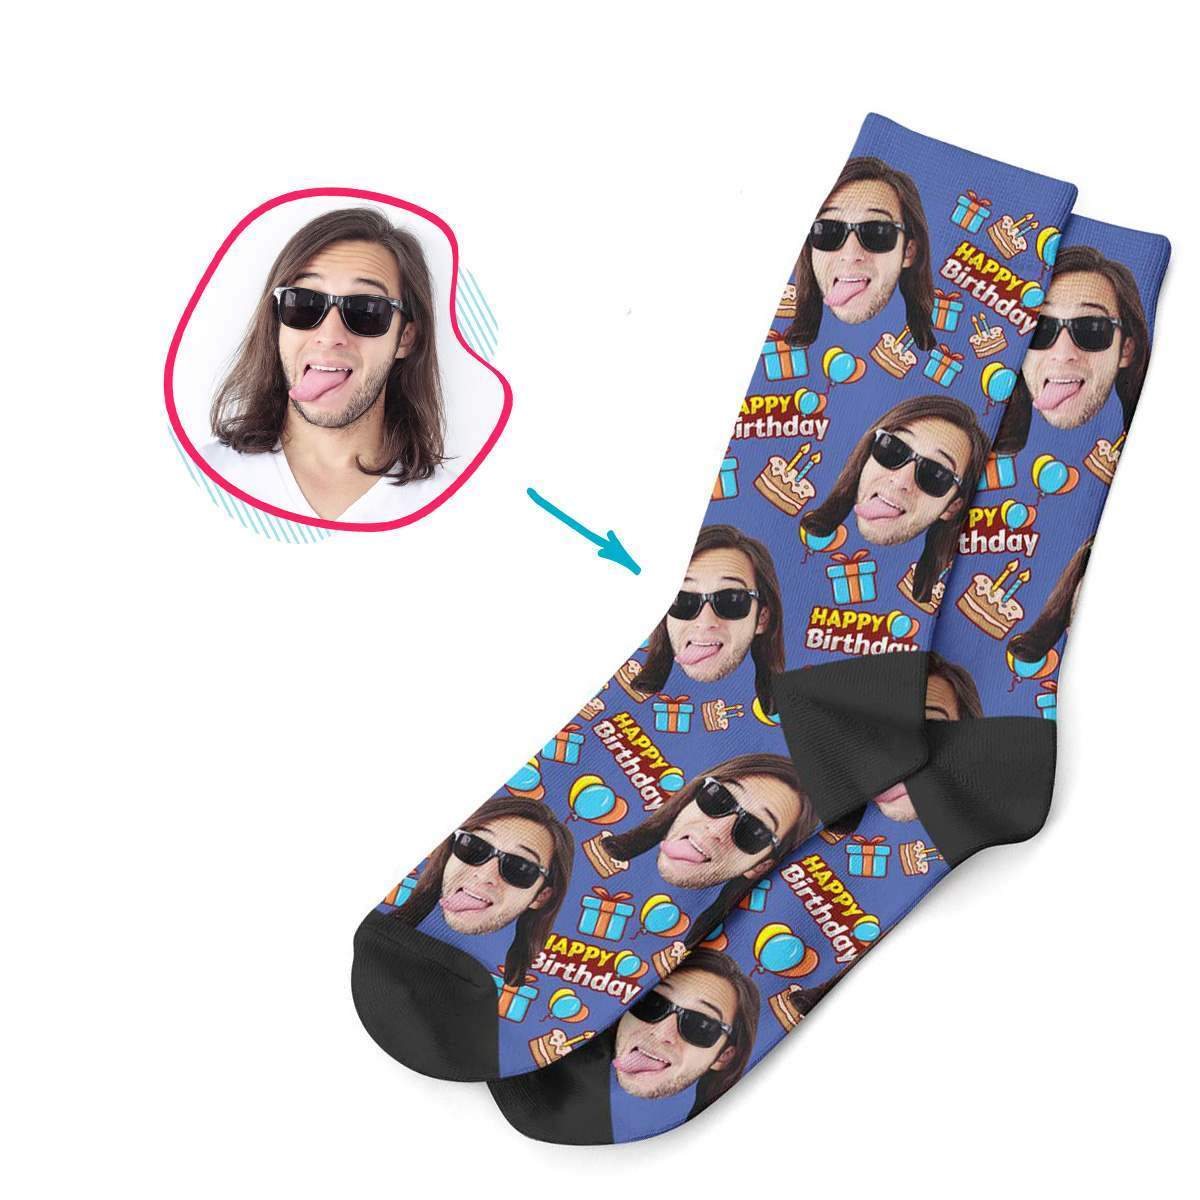 darkblue Birthday socks personalized with photo of face printed on them